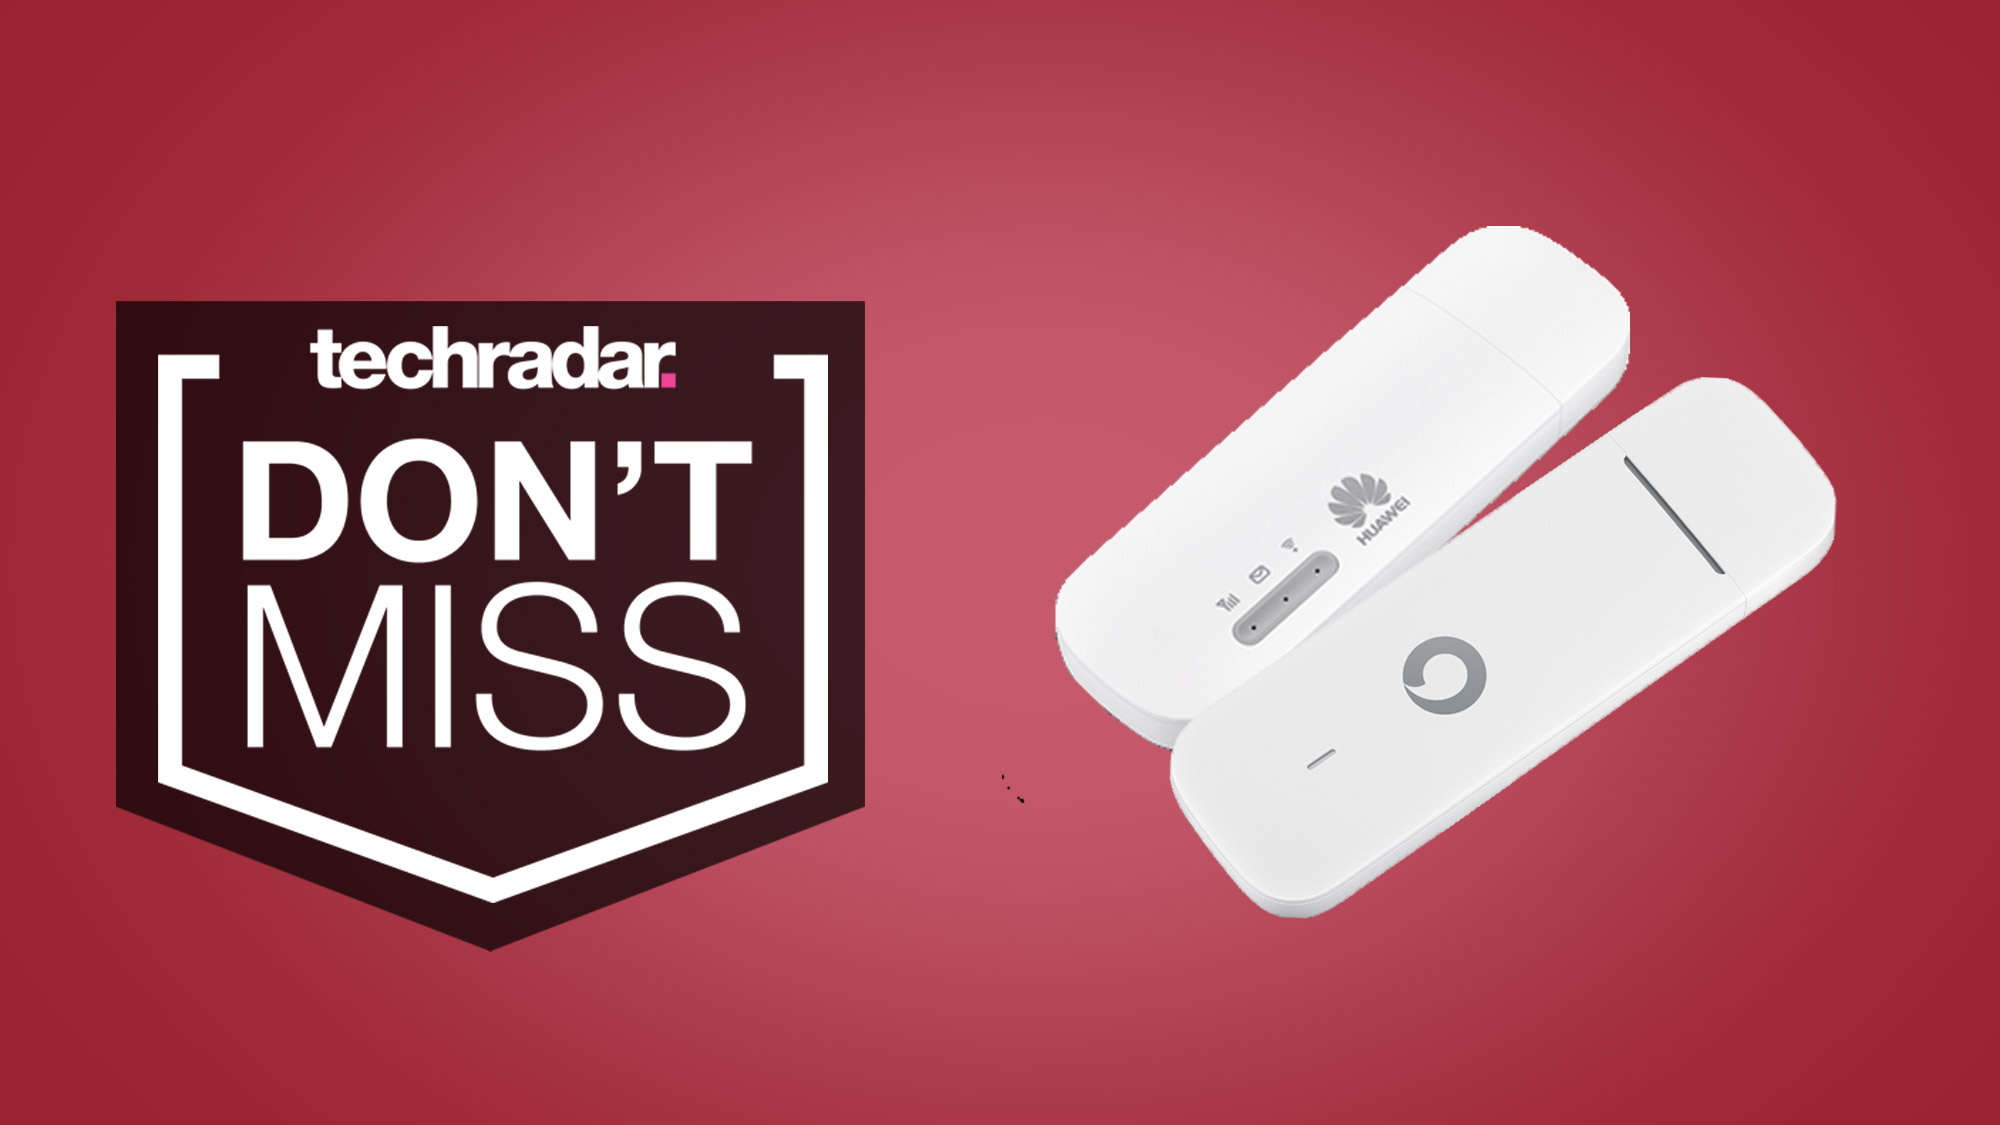 Here's where to buy the cheapest mobile broadband dongles currently available